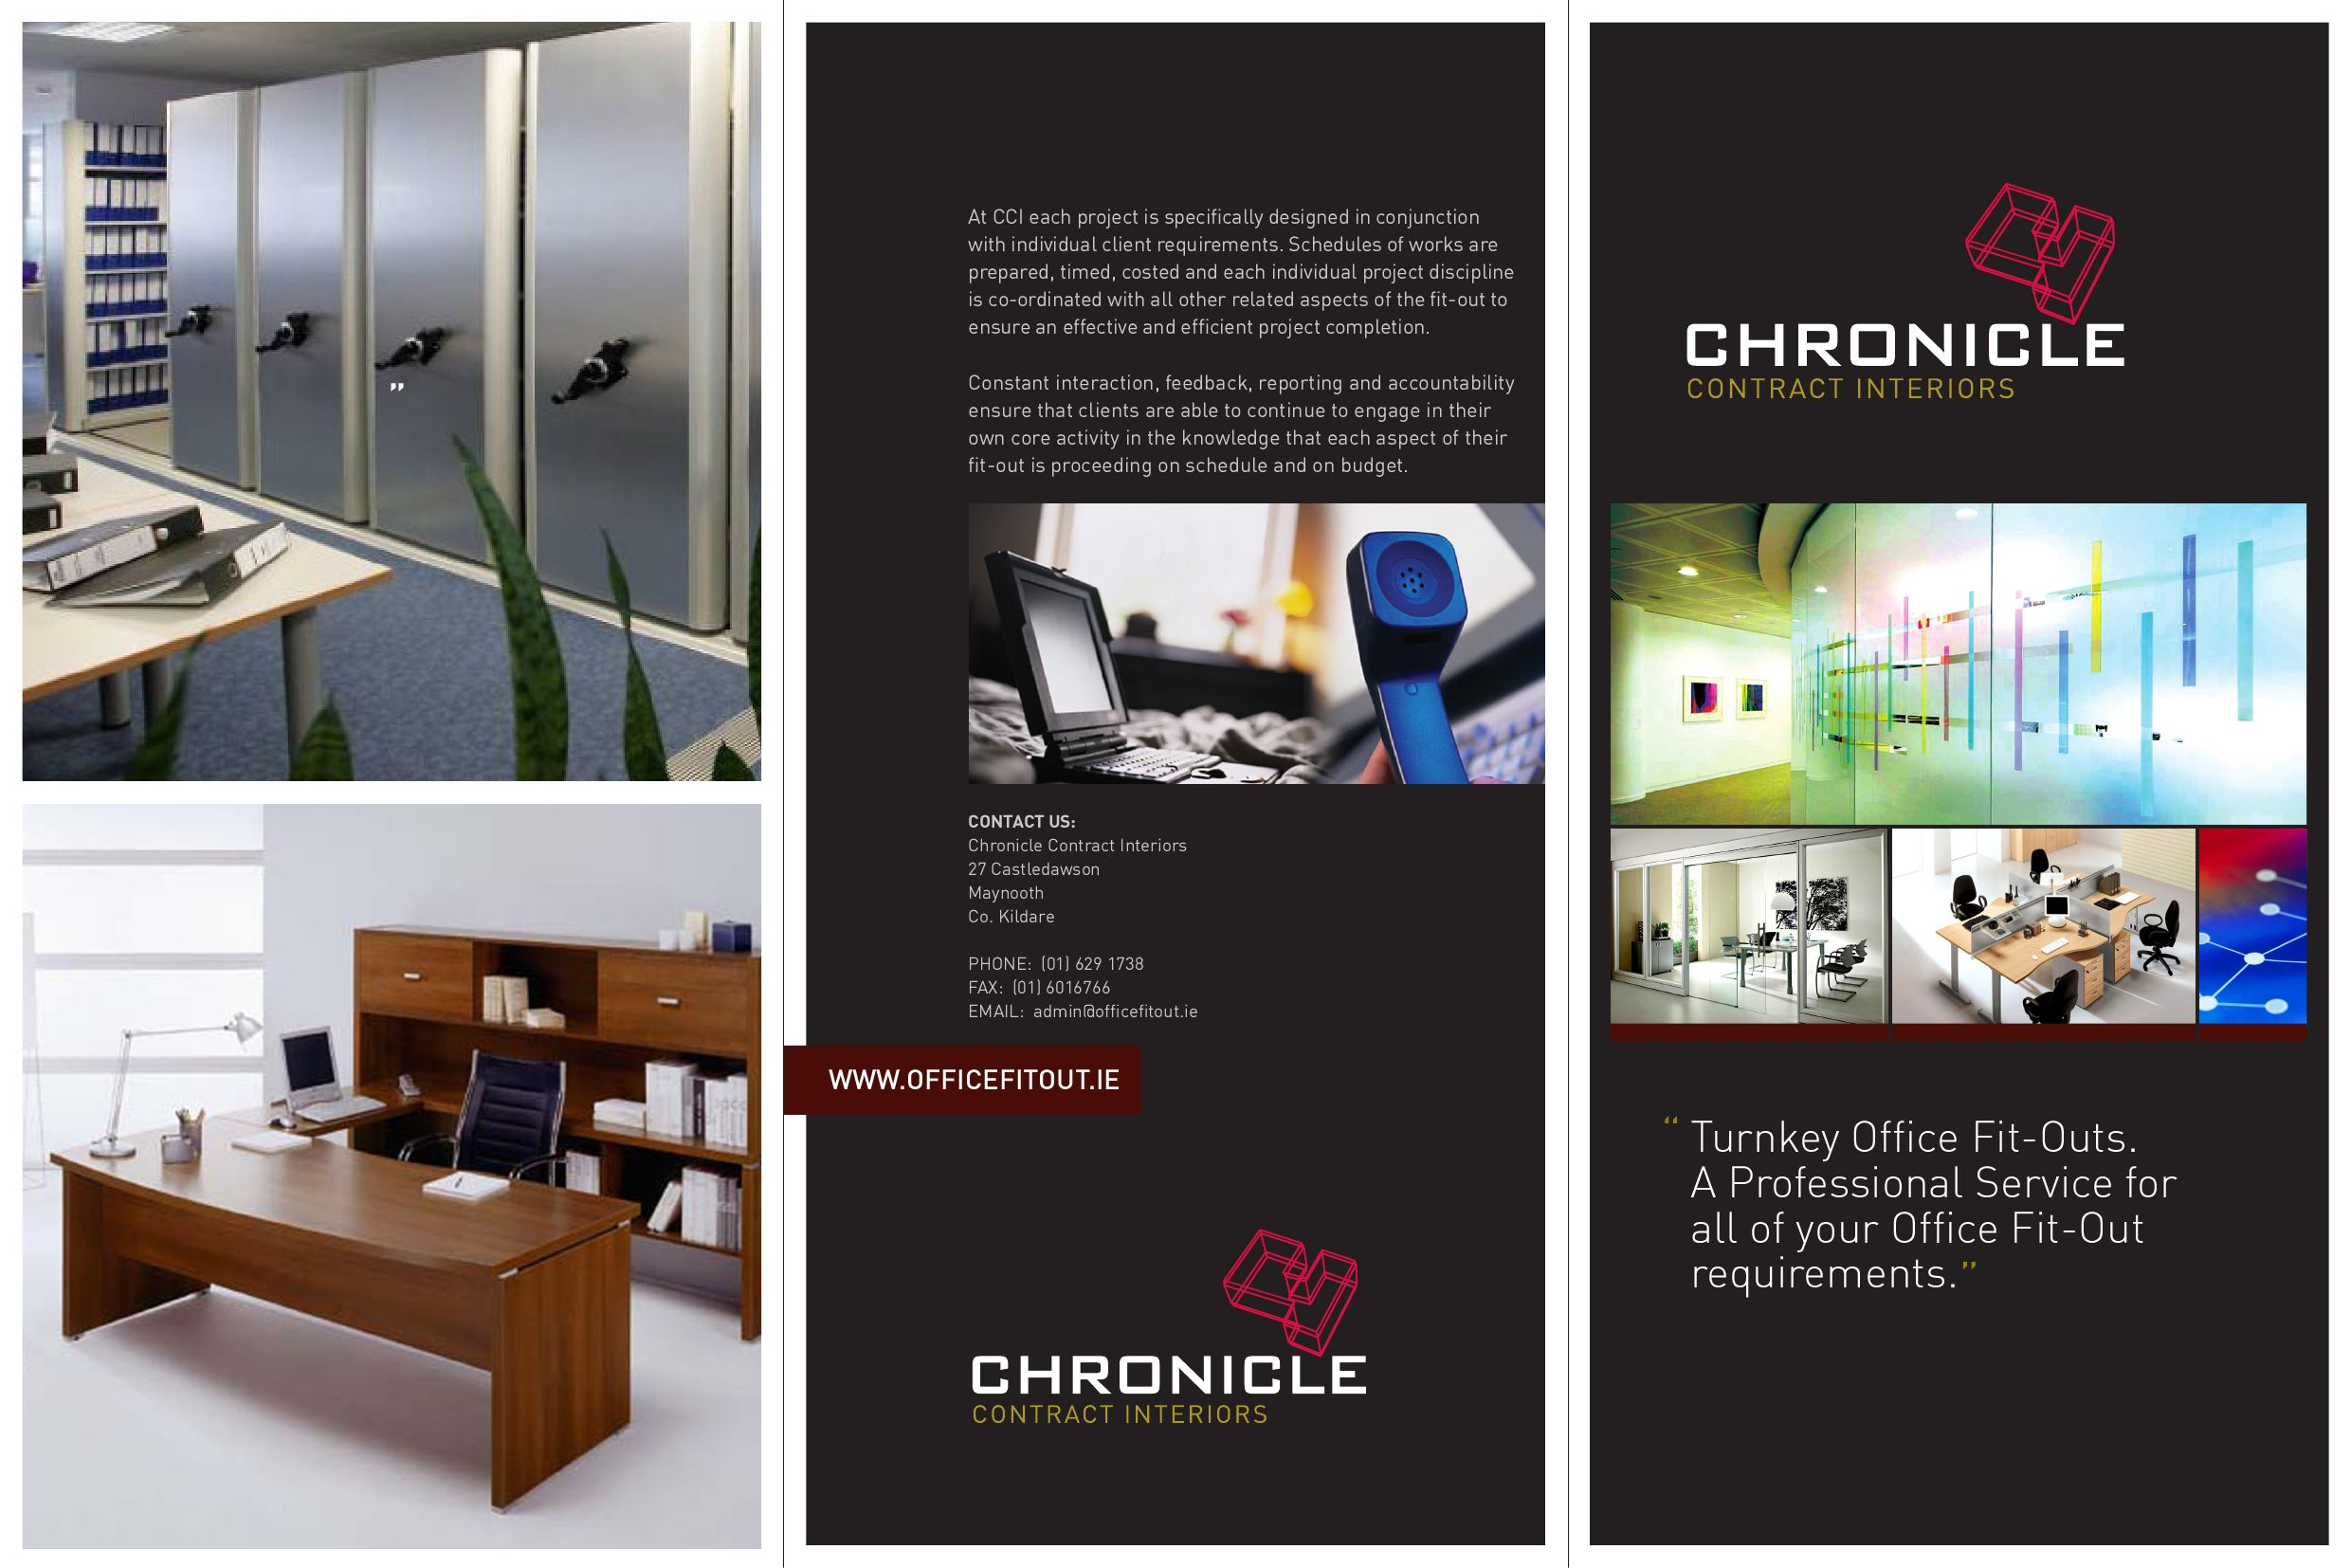 Chronicle Contract Interiors By Allison Condron   Issuu